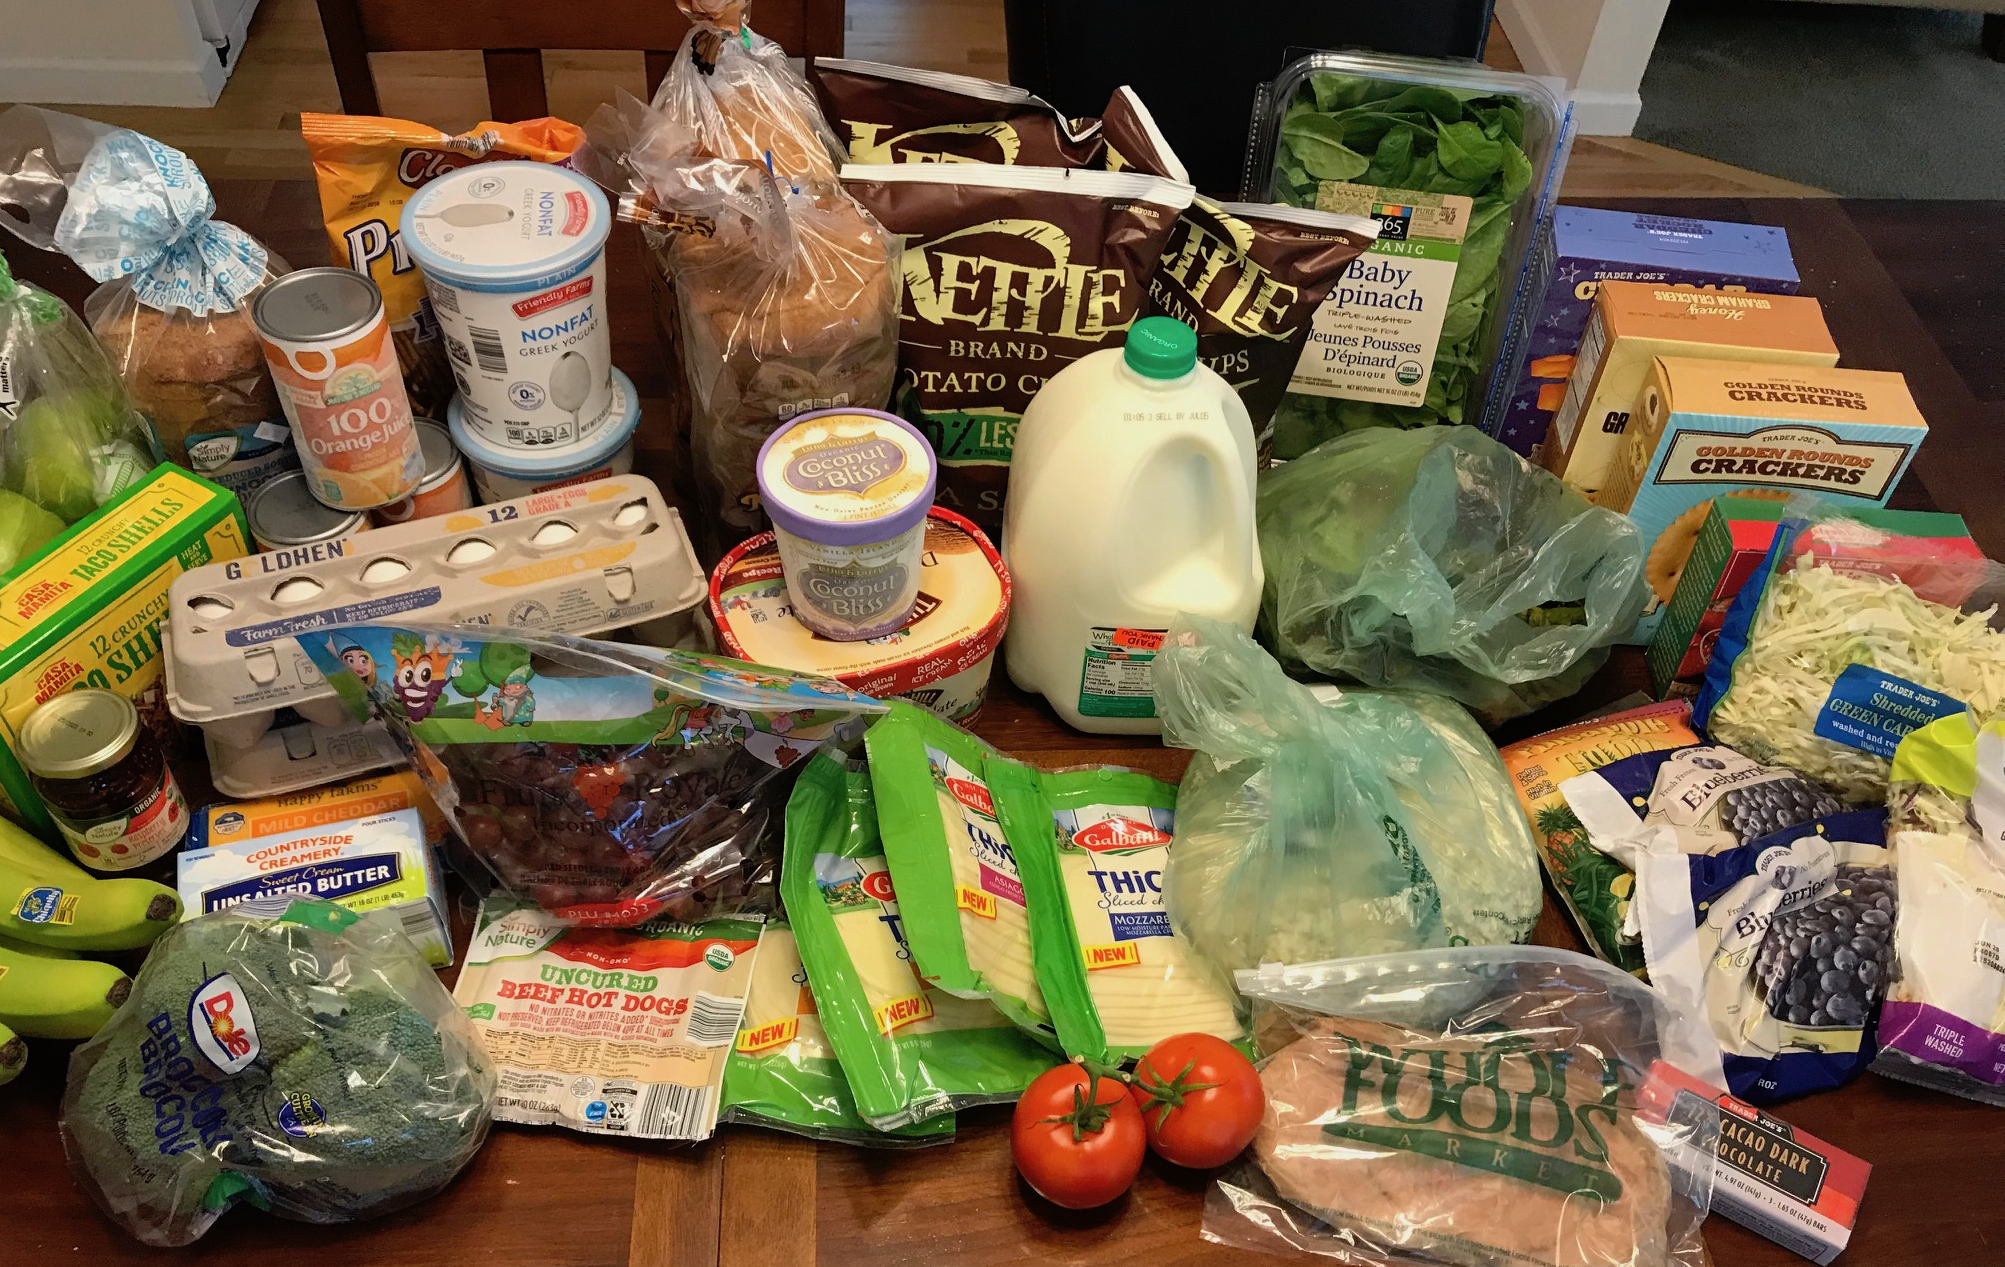 My Weekly Grocery Haul for June 23!